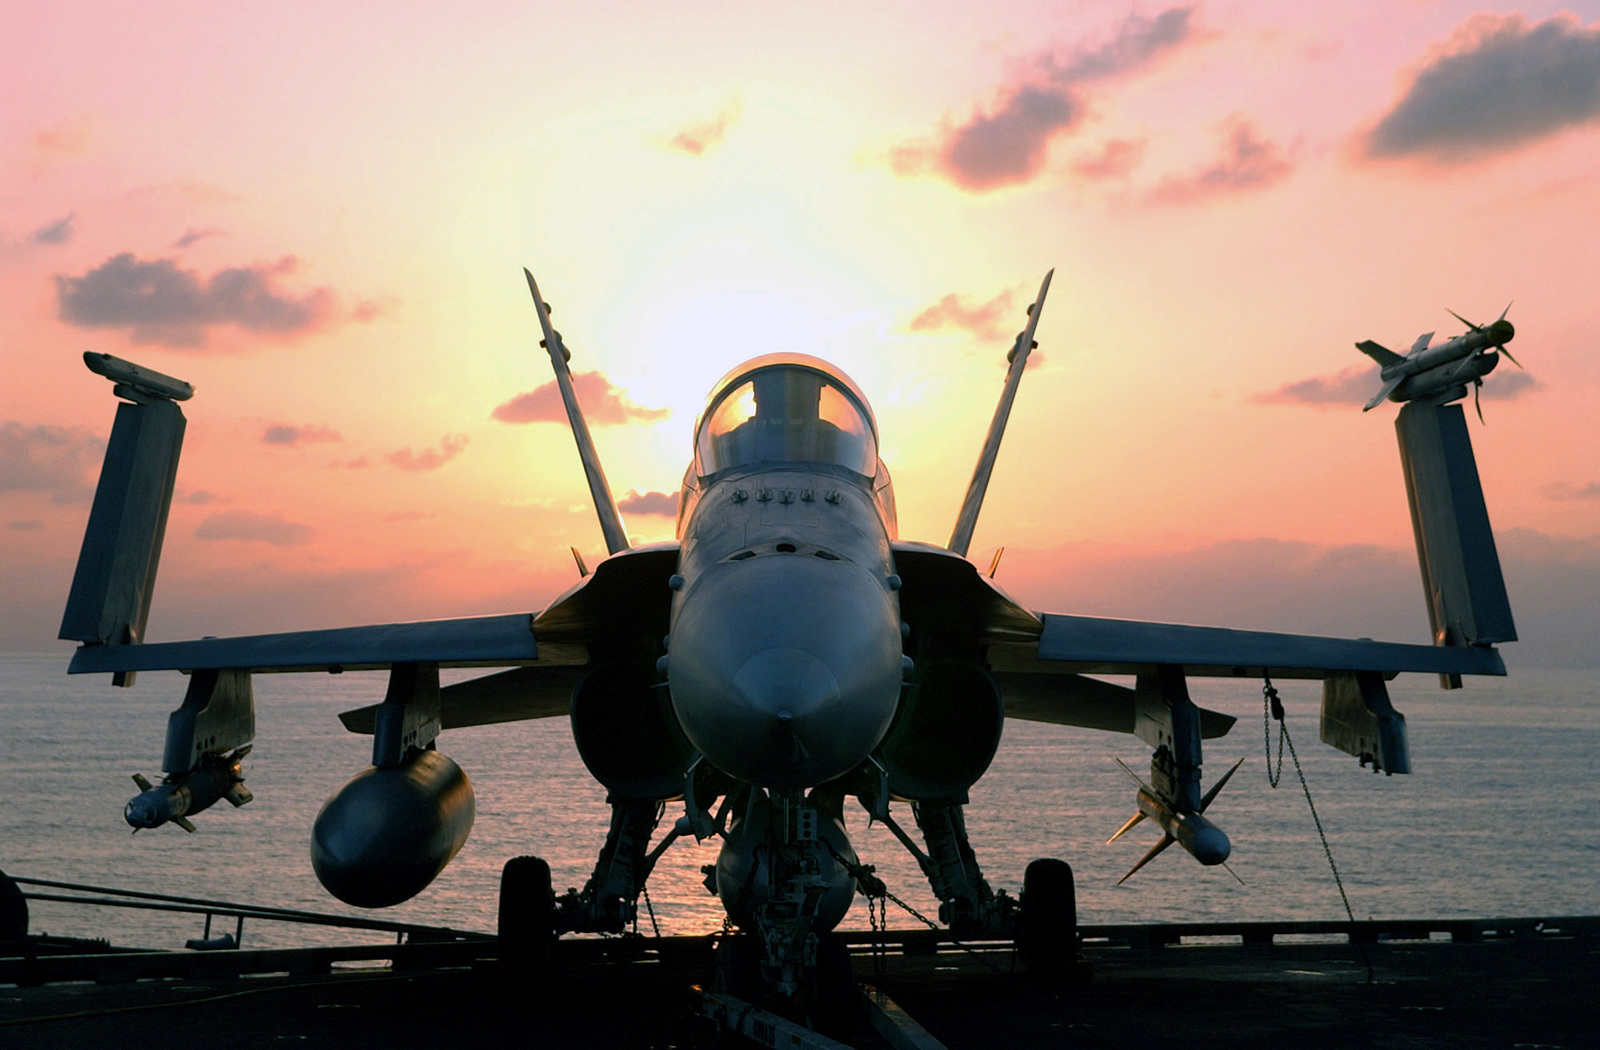 The sun rises on an F/A-18 Hornet on the USS John C. Stennis (CVN 74) after returning from a round of flight operations in support of Operation ENDURING FREEDOM. The Hornet is armed with an AIM-9 Sidewinder (right), AIM-7 Sparrow (right, lower) and a Laser Guided Mk-82 Bomb. The Hornet will soon be fully rearmed and along with the Stennis deployed Carrier Air Wing 9, continue in their full support of Operation ENDURING FREEDOM